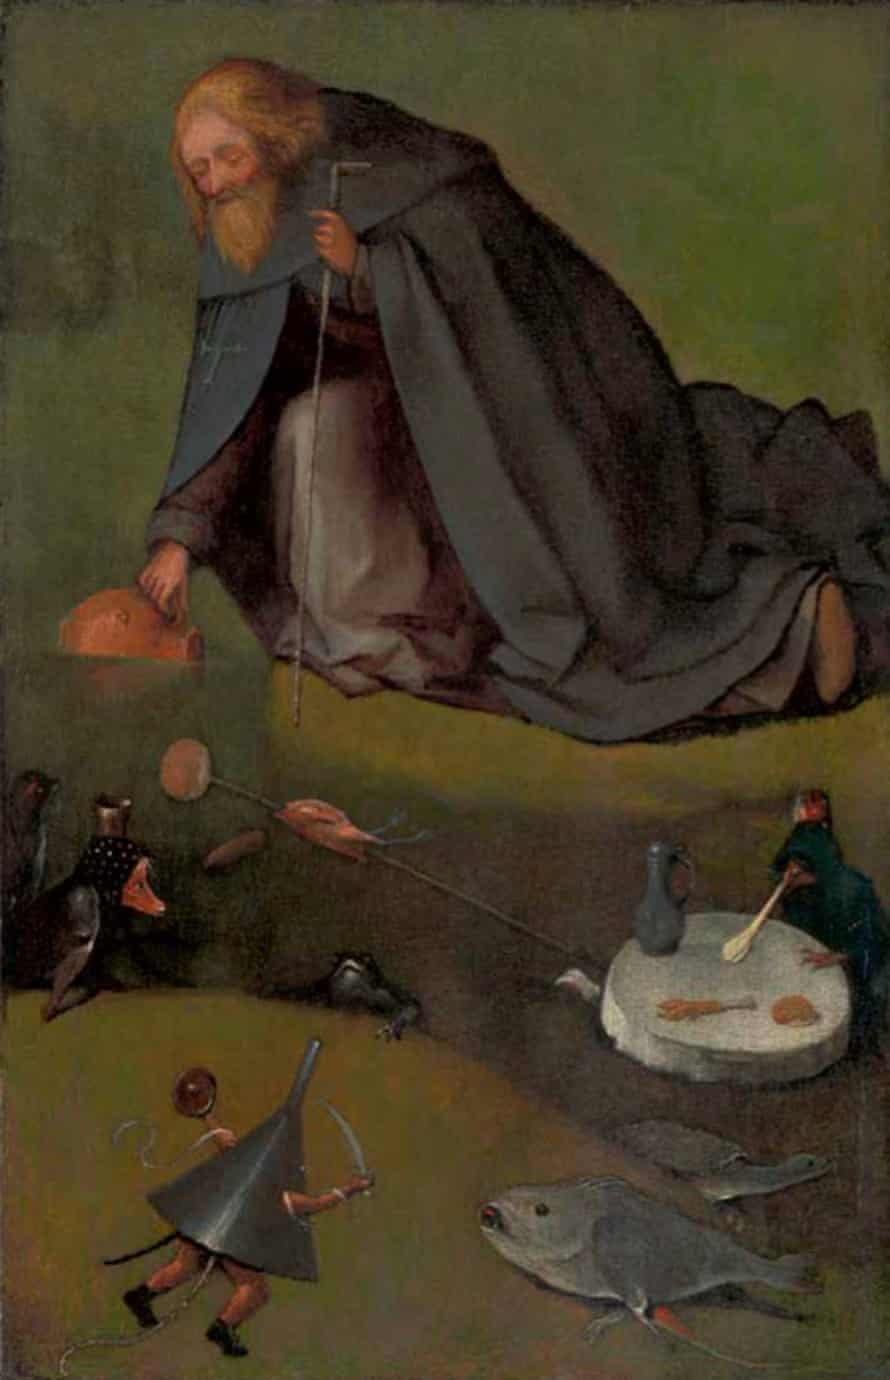 The Temptation of Saint Anthony, by Hieronymus Bosch.